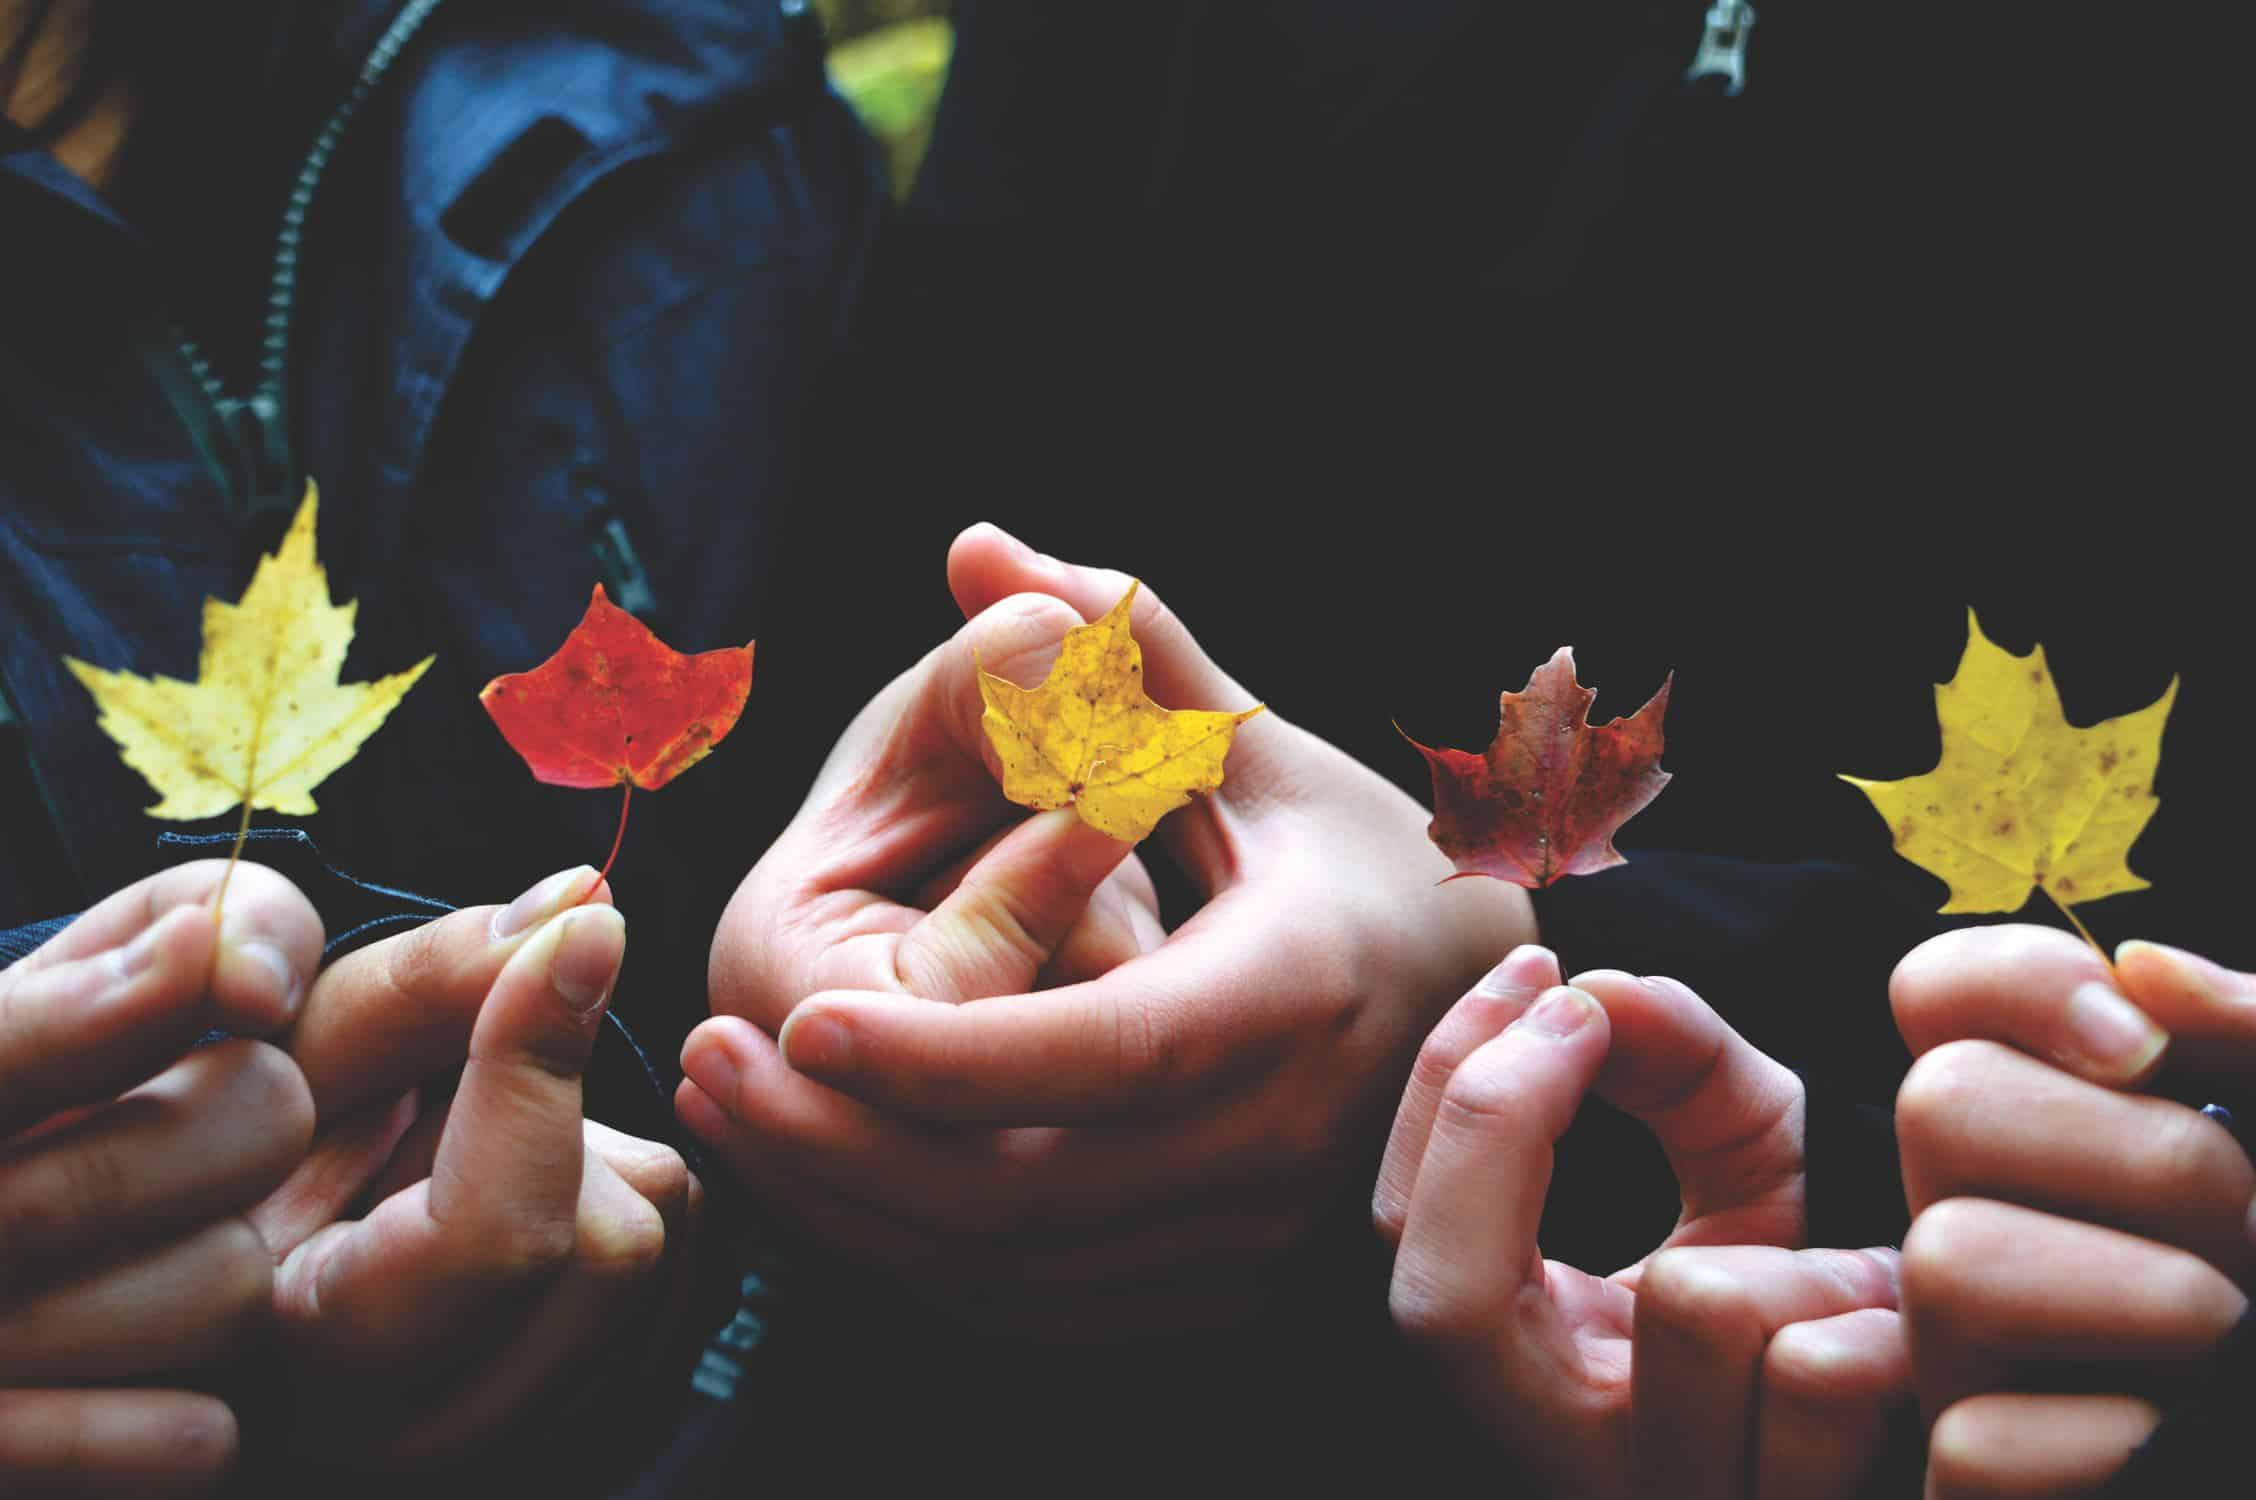 five different hands, each holding a different-colored leaf